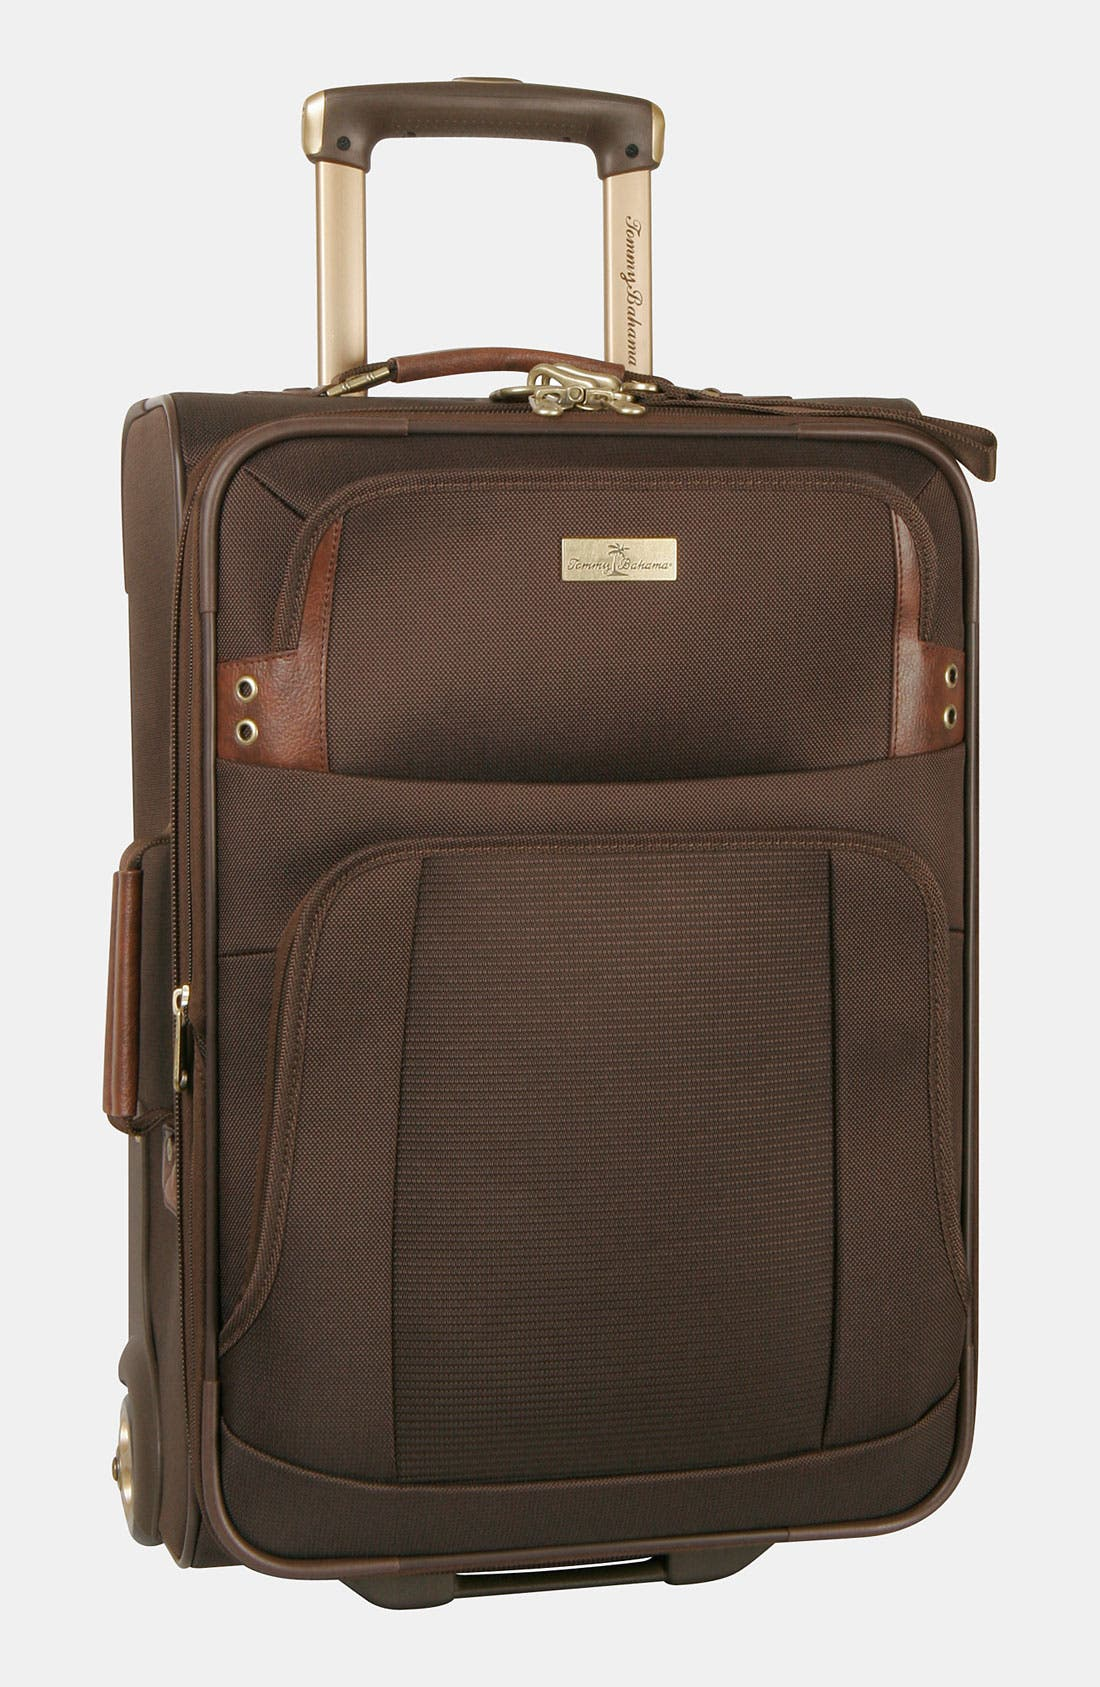 Alternate Image 1 Selected - Tommy Bahama 'Harbor' Rolling Suitcase